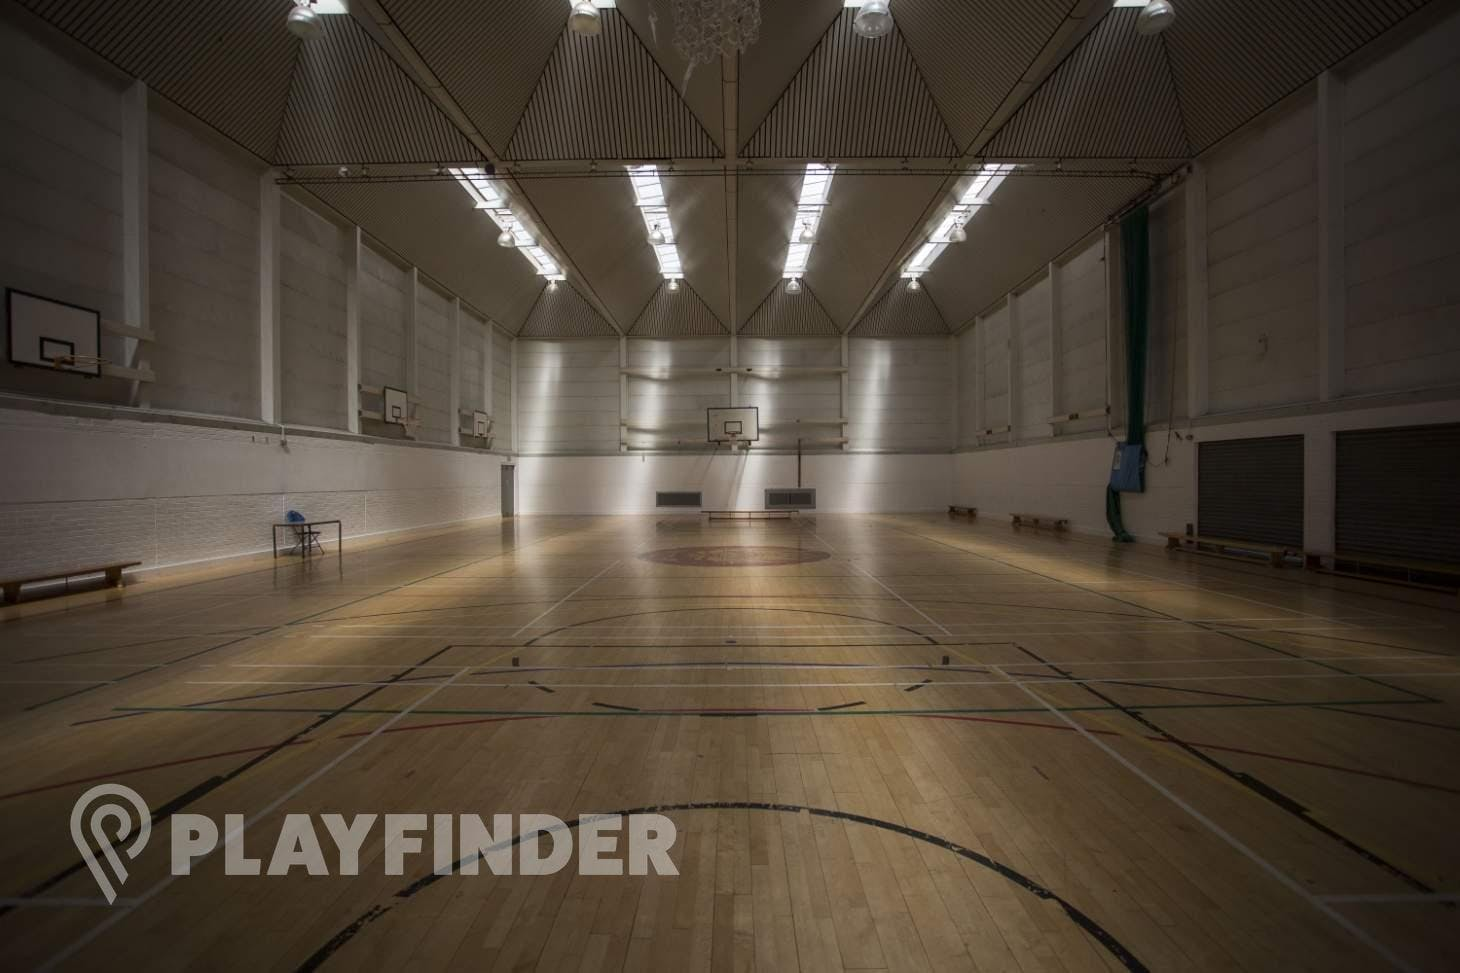 Acland Burghley School Sports hall space hire